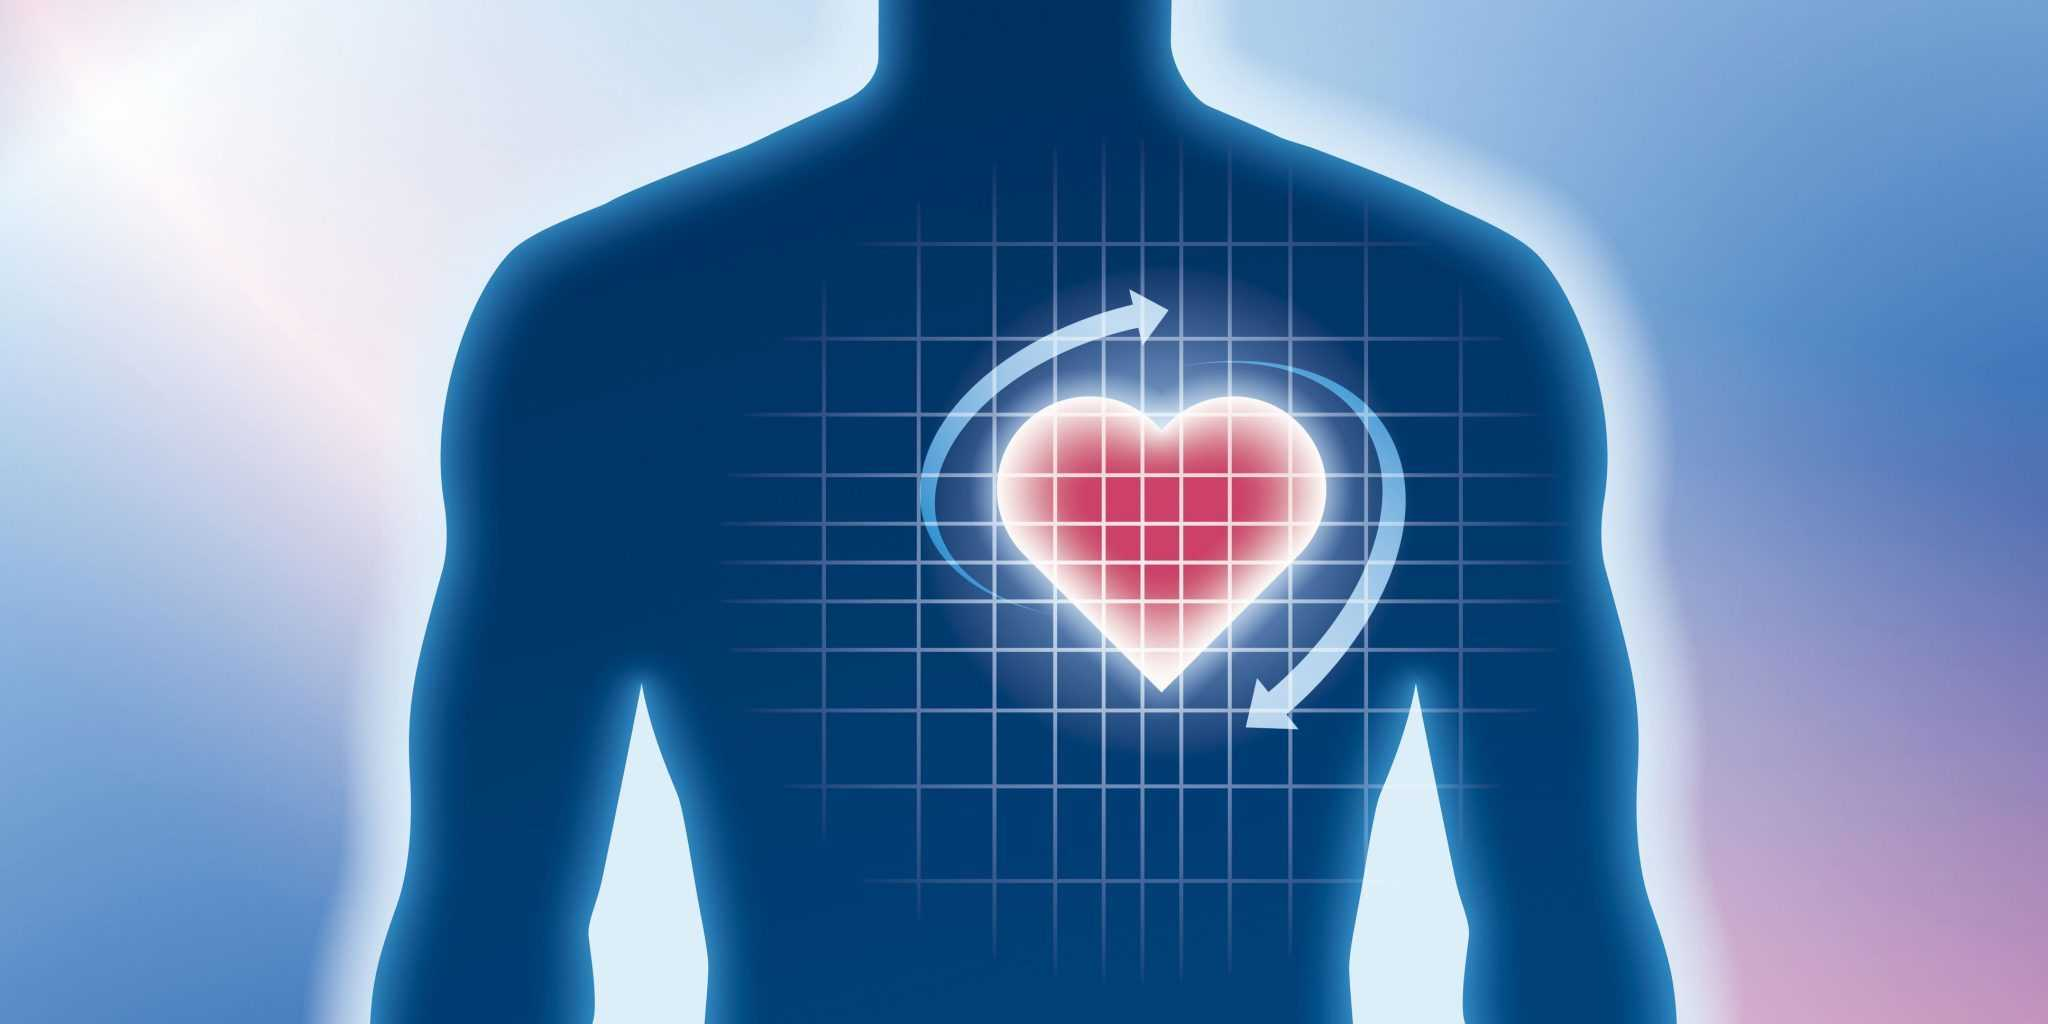 Heart rate variability and the influence of craniosacral therapy on autonomous nervous system regulation in persons with subjective discomforts: a pilot study.